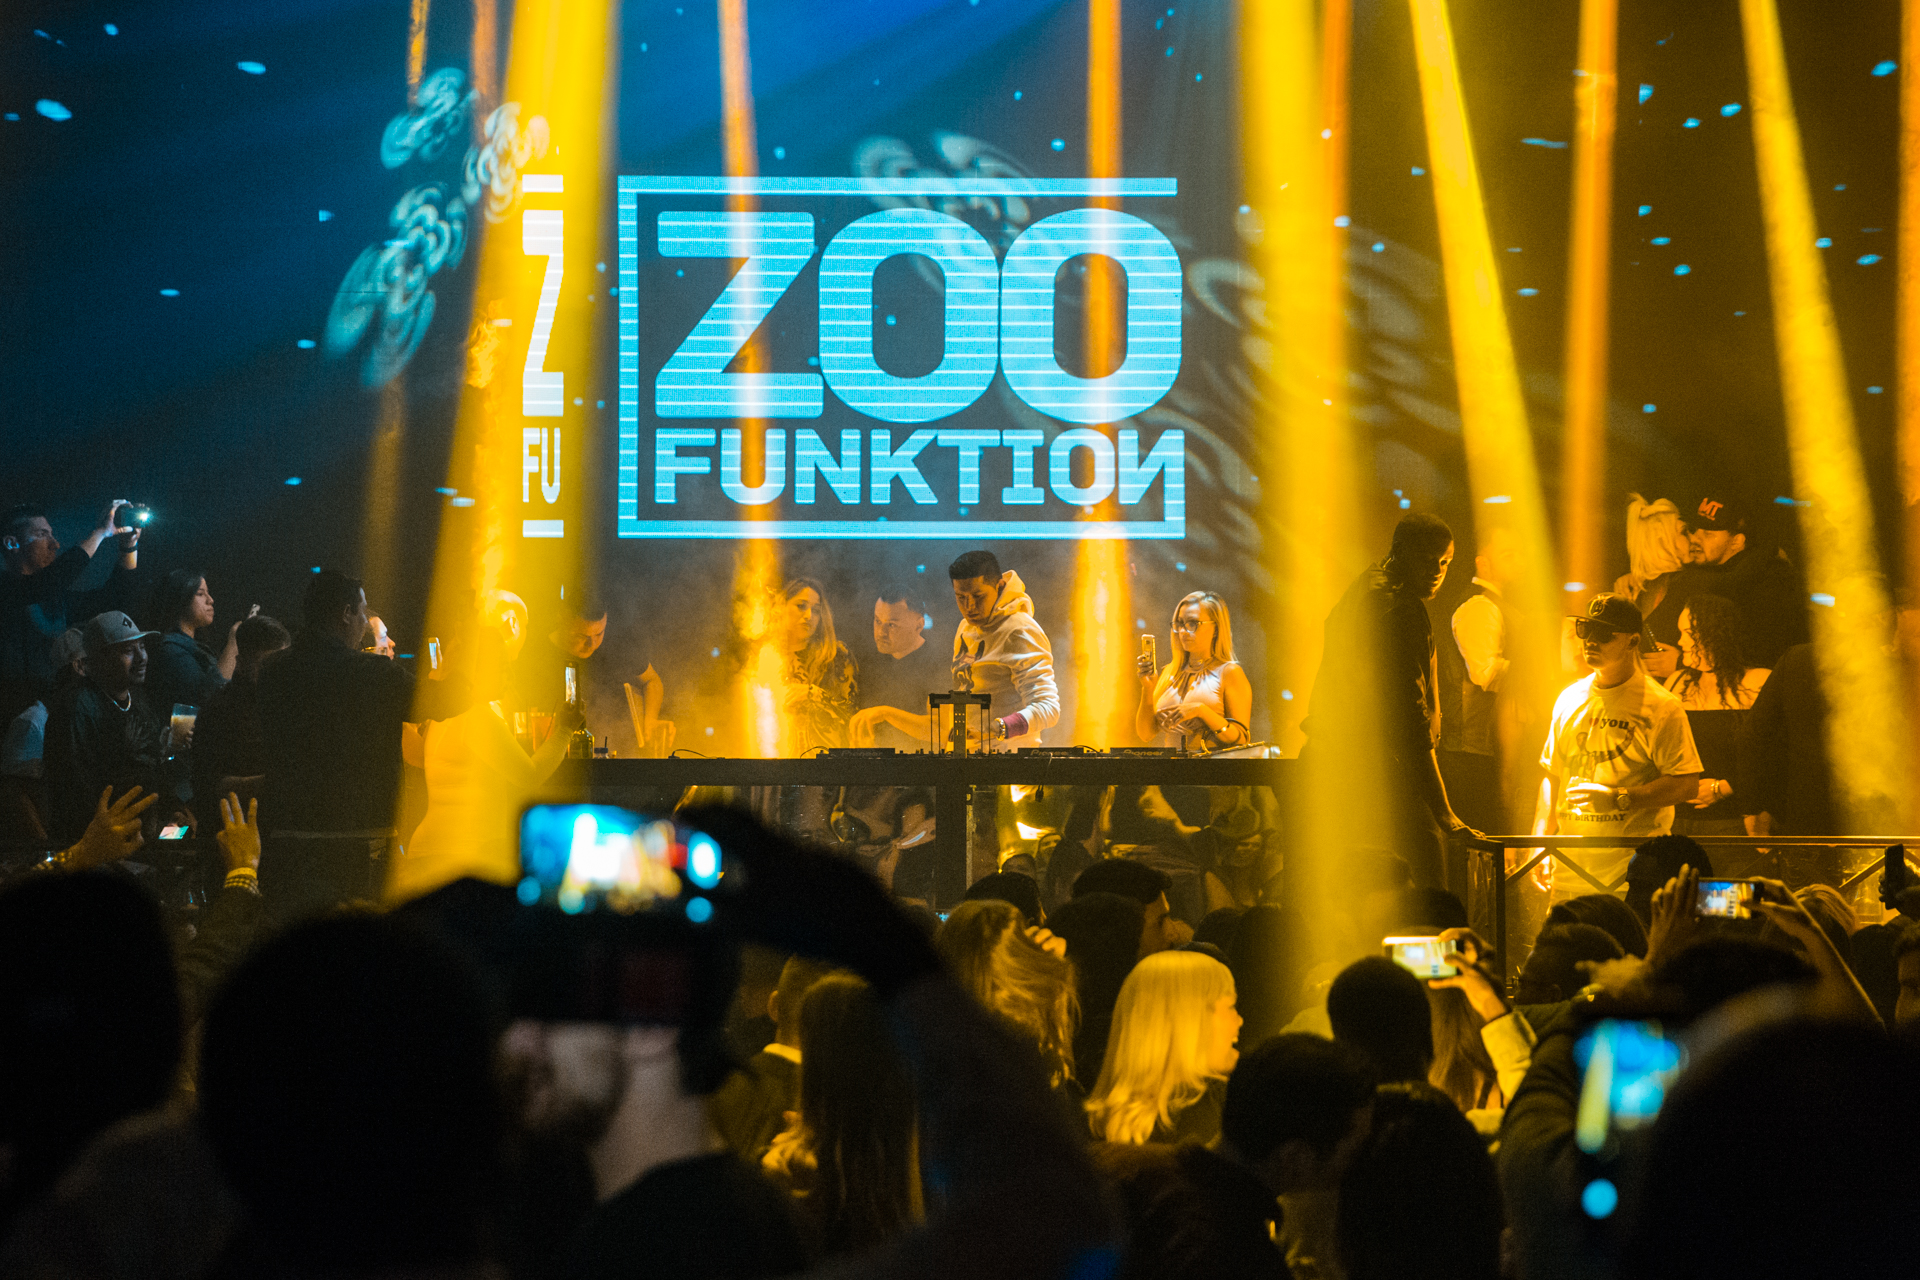 12.16.17 Parq - Zoo Funktion--1.jpg